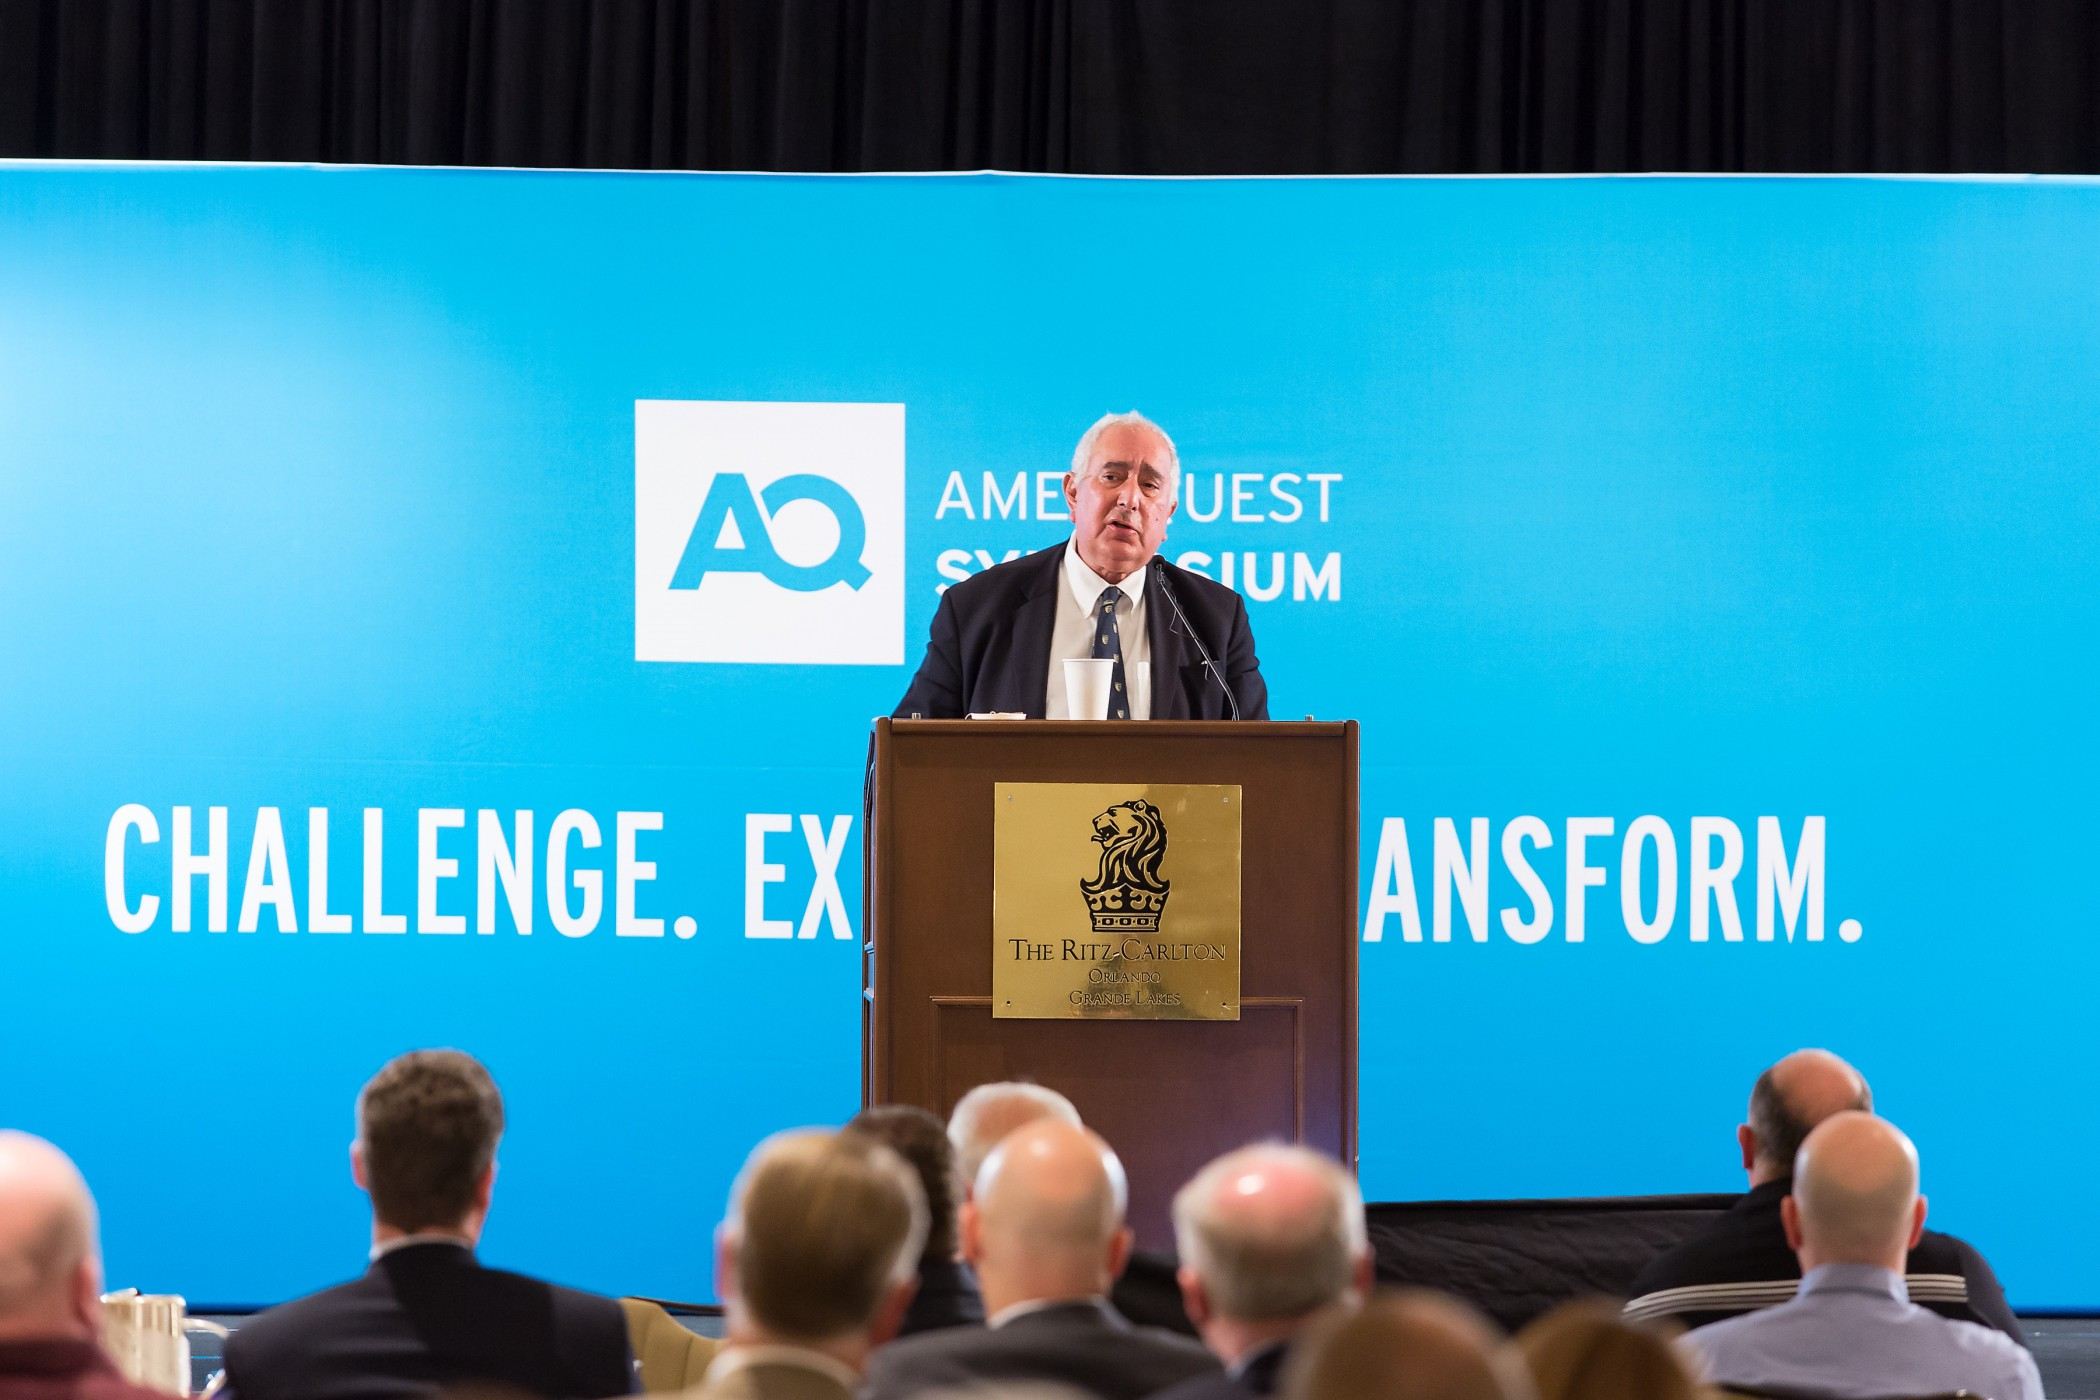 Day One of the 2015 AmeriQuest Symposium Focuses on Service, the Economy, and Transportation